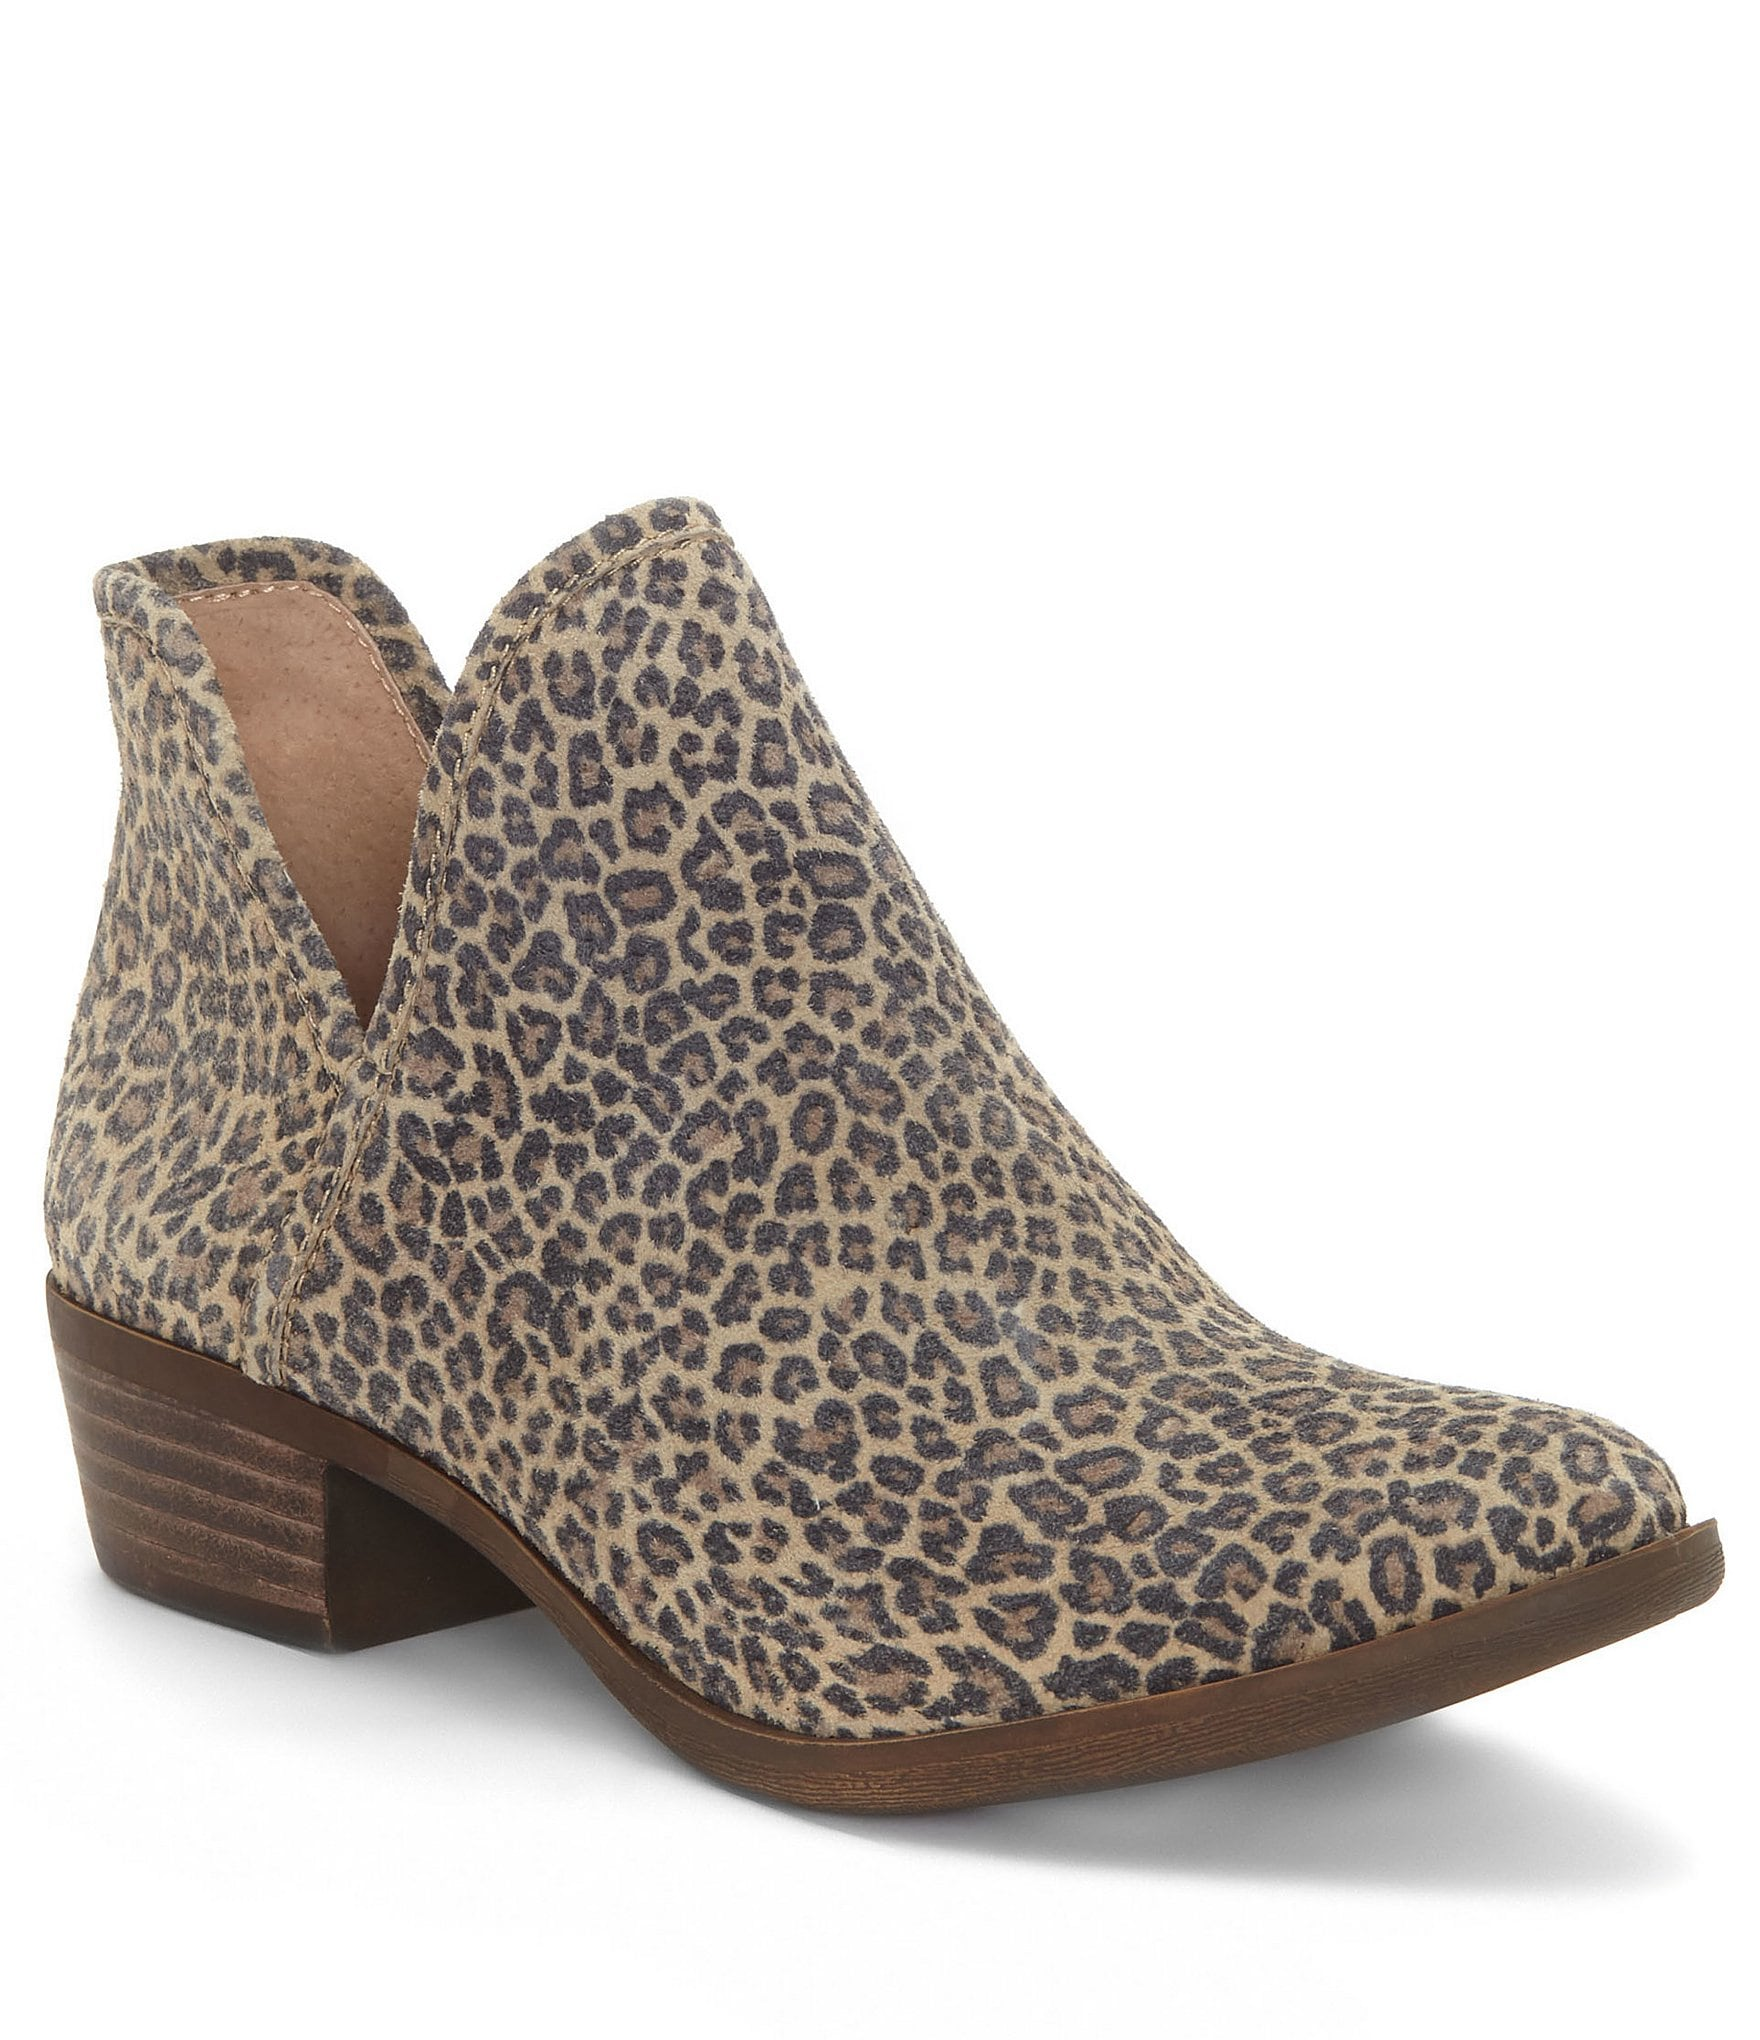 Clarks Leopard Print Shoes